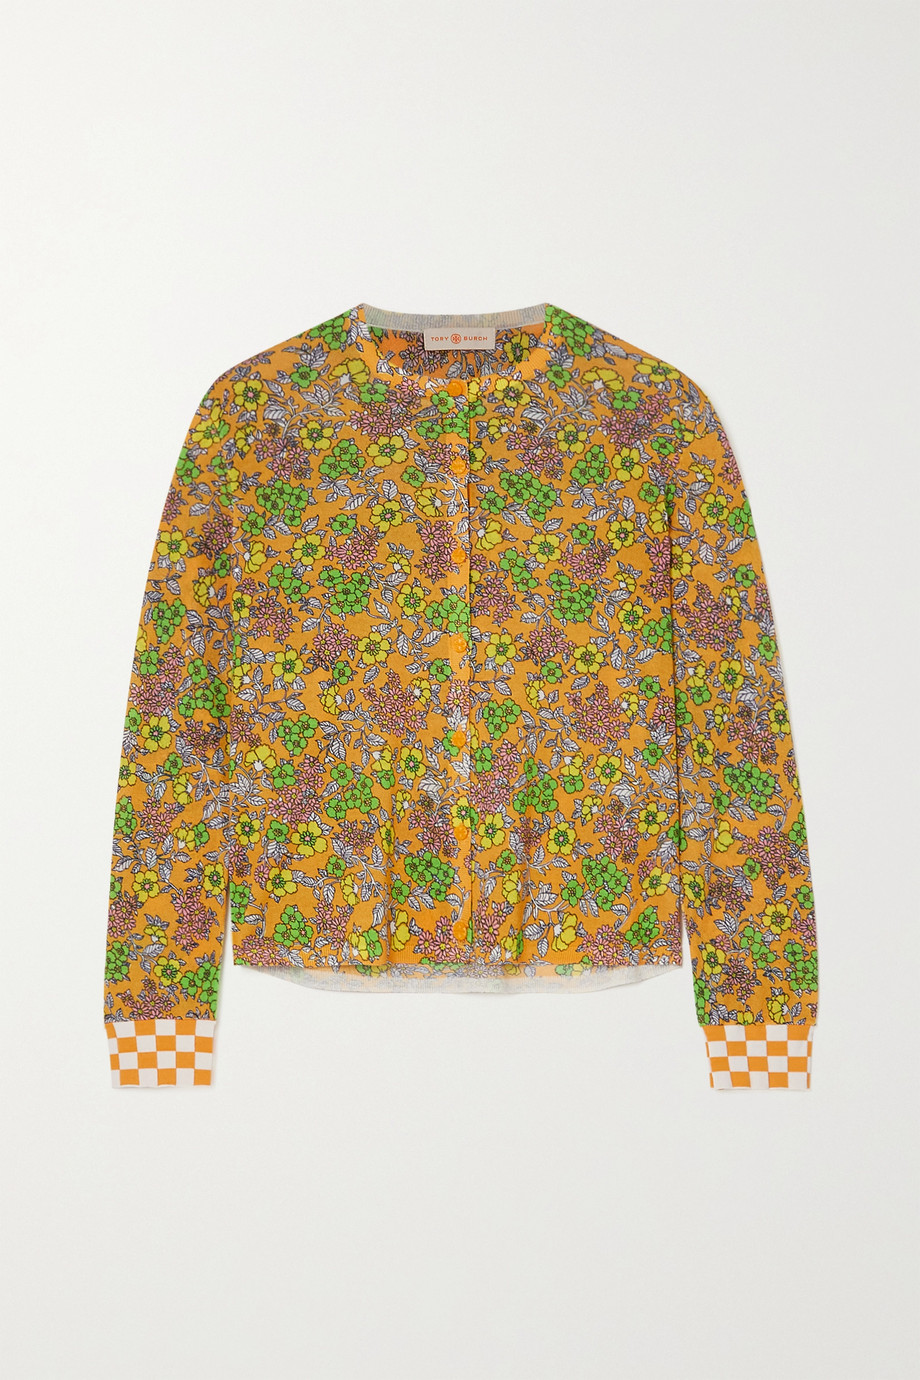 TORY BURCH Cropped checked floral-print cotton-blend cardigan